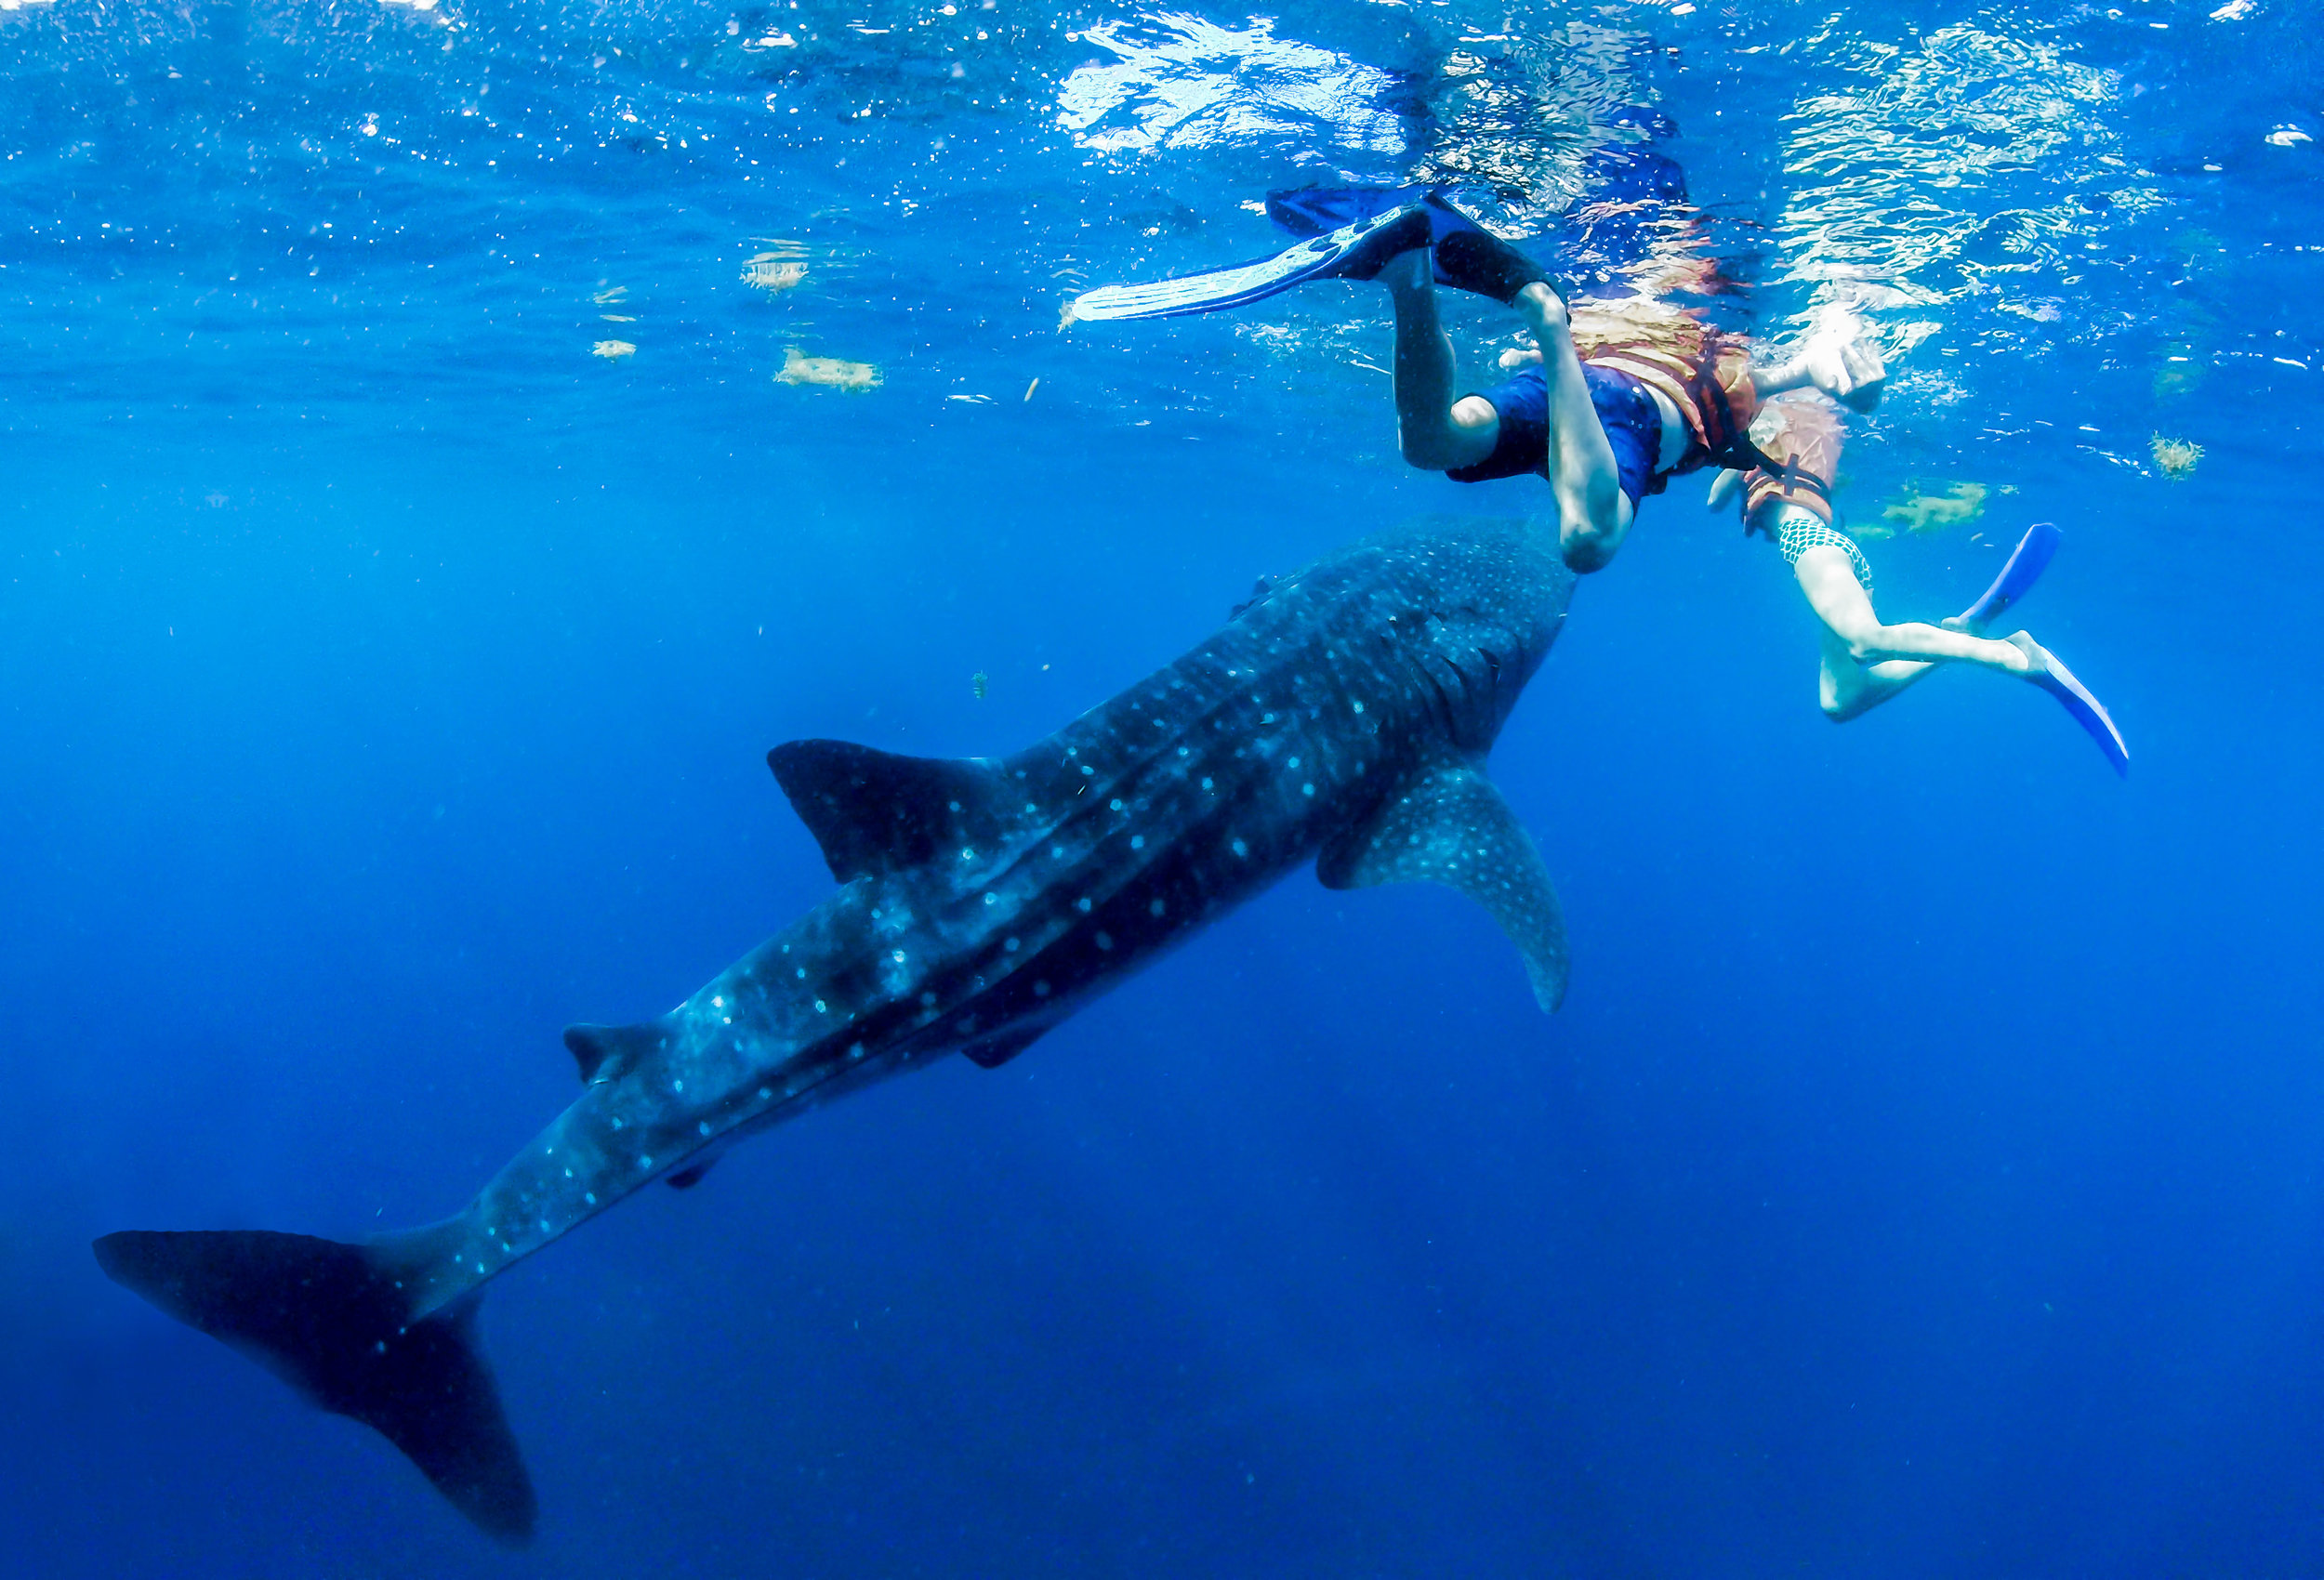 We had several chances to get close to the whale sharks.